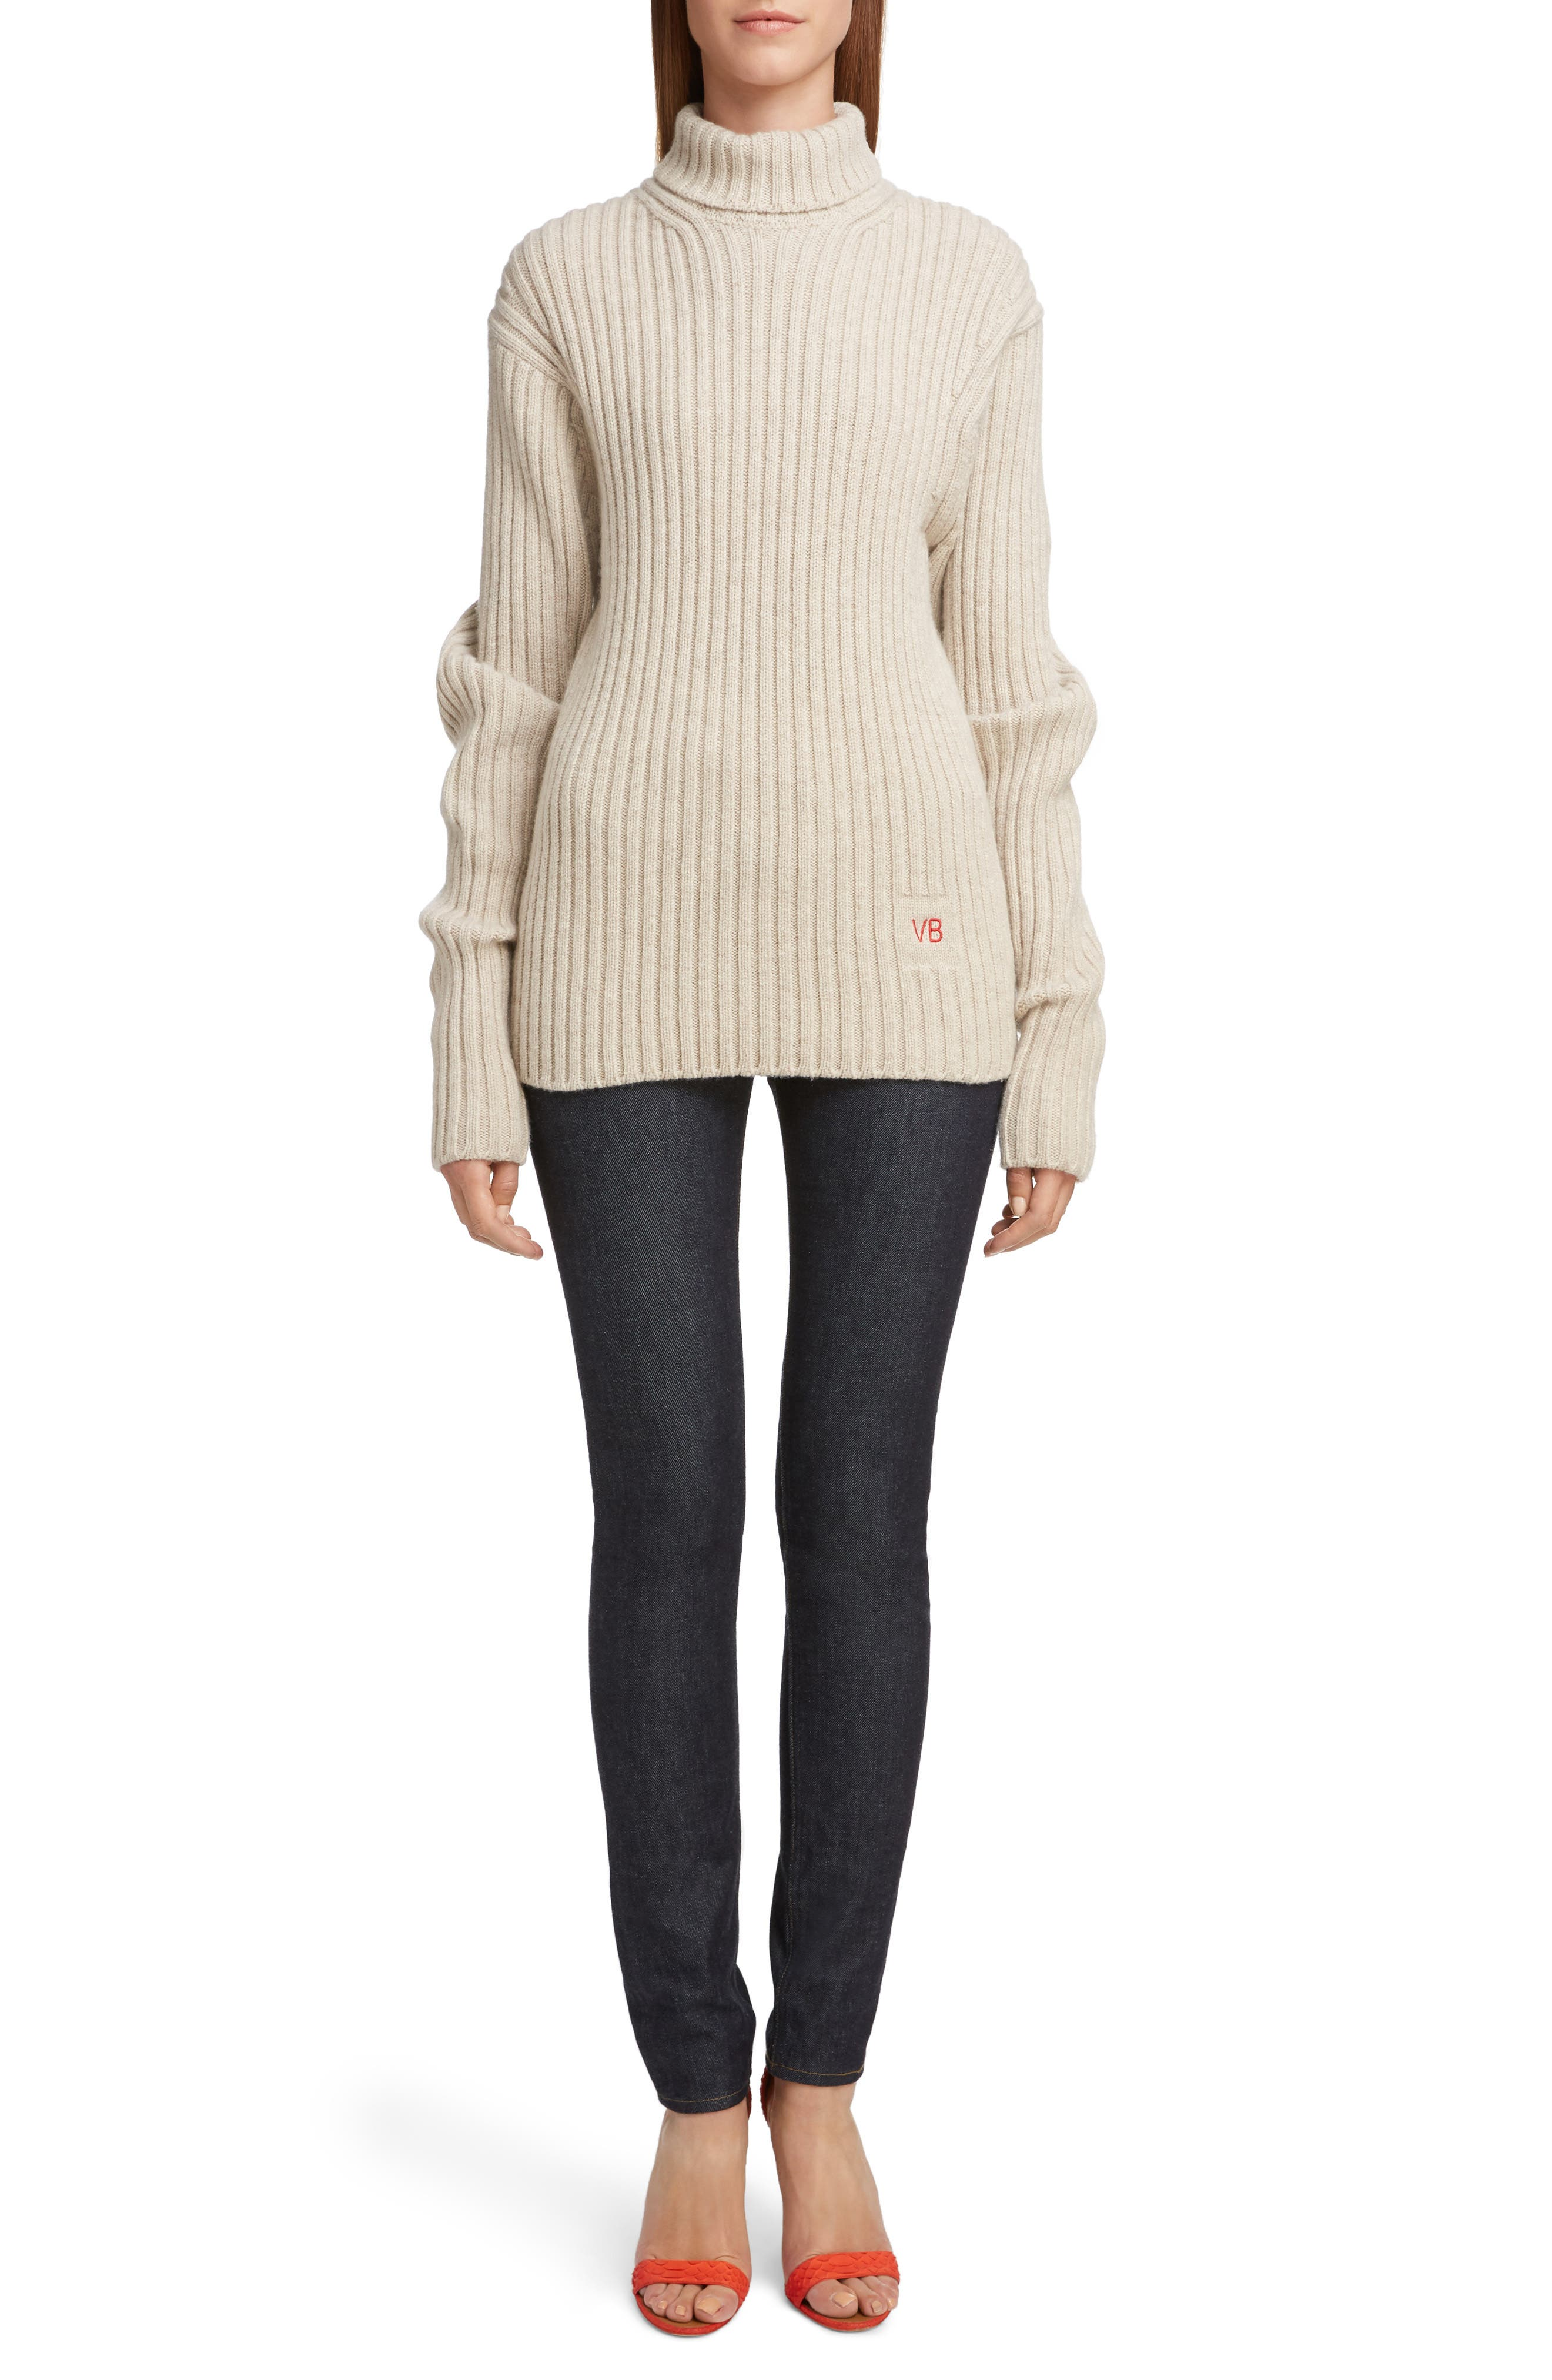 VICTORIA BECKHAM, Ribbed Wool Turtleneck Sweater, Main thumbnail 1, color, OATMEAL